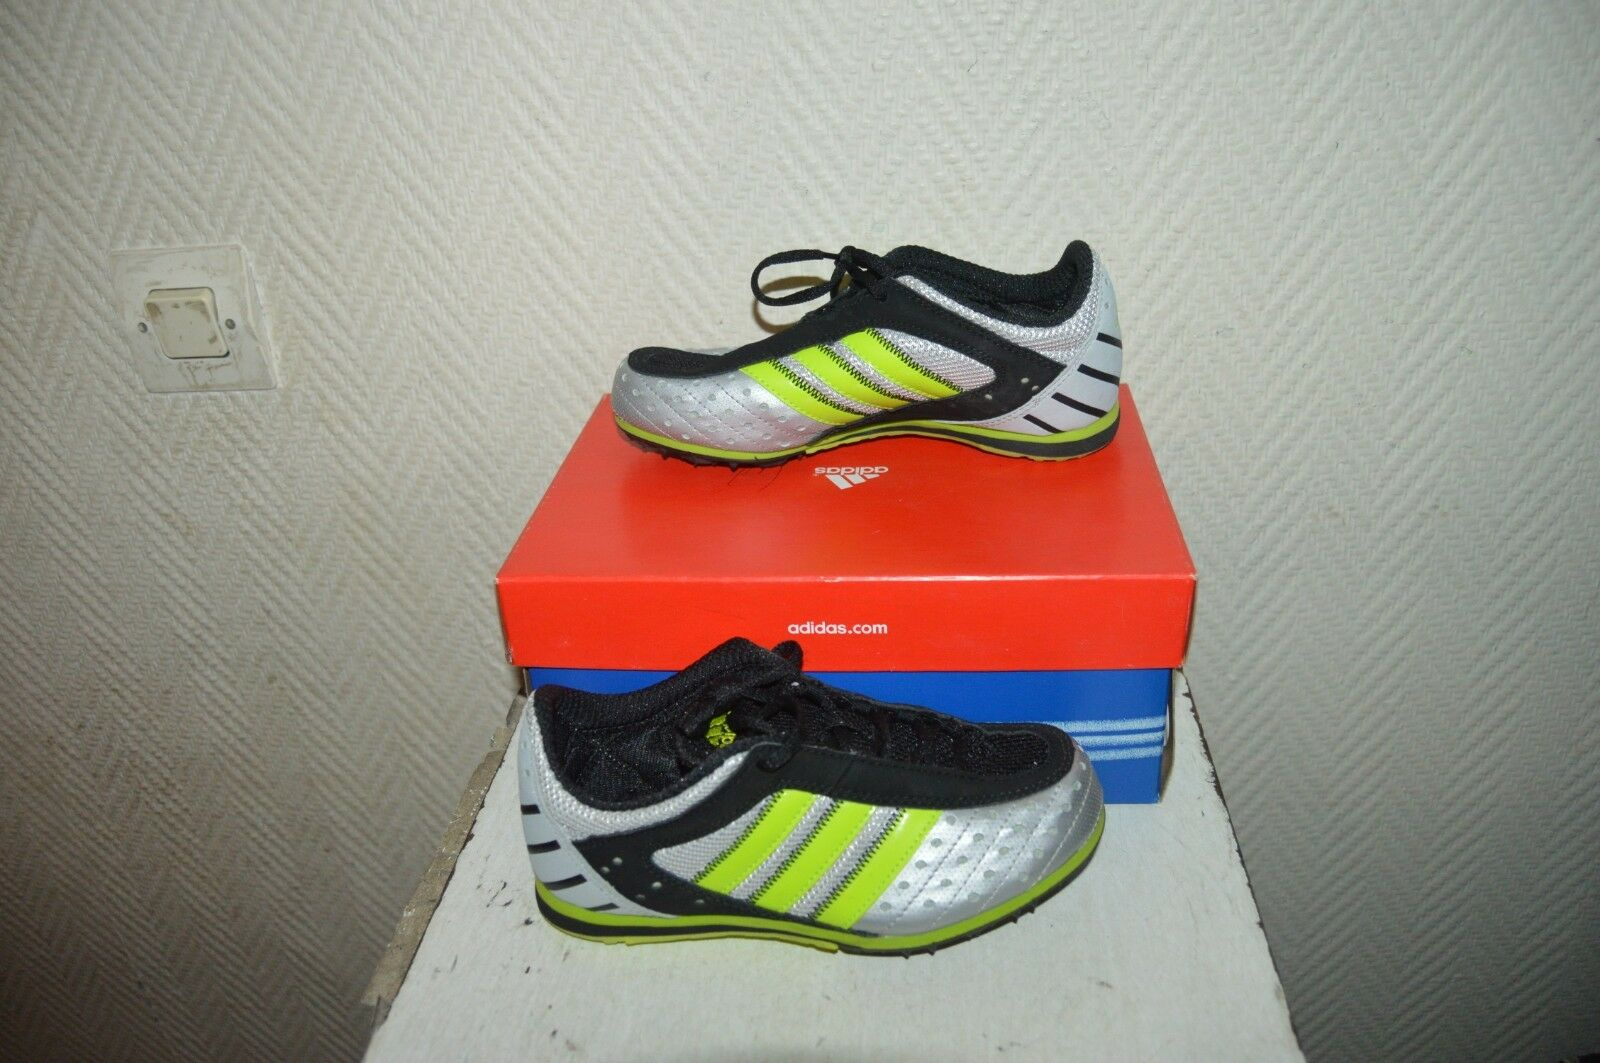 CHAUSSURE ATHLESTISME POINTE ADIDAS size 34 SHOES shoes shoes NEUF